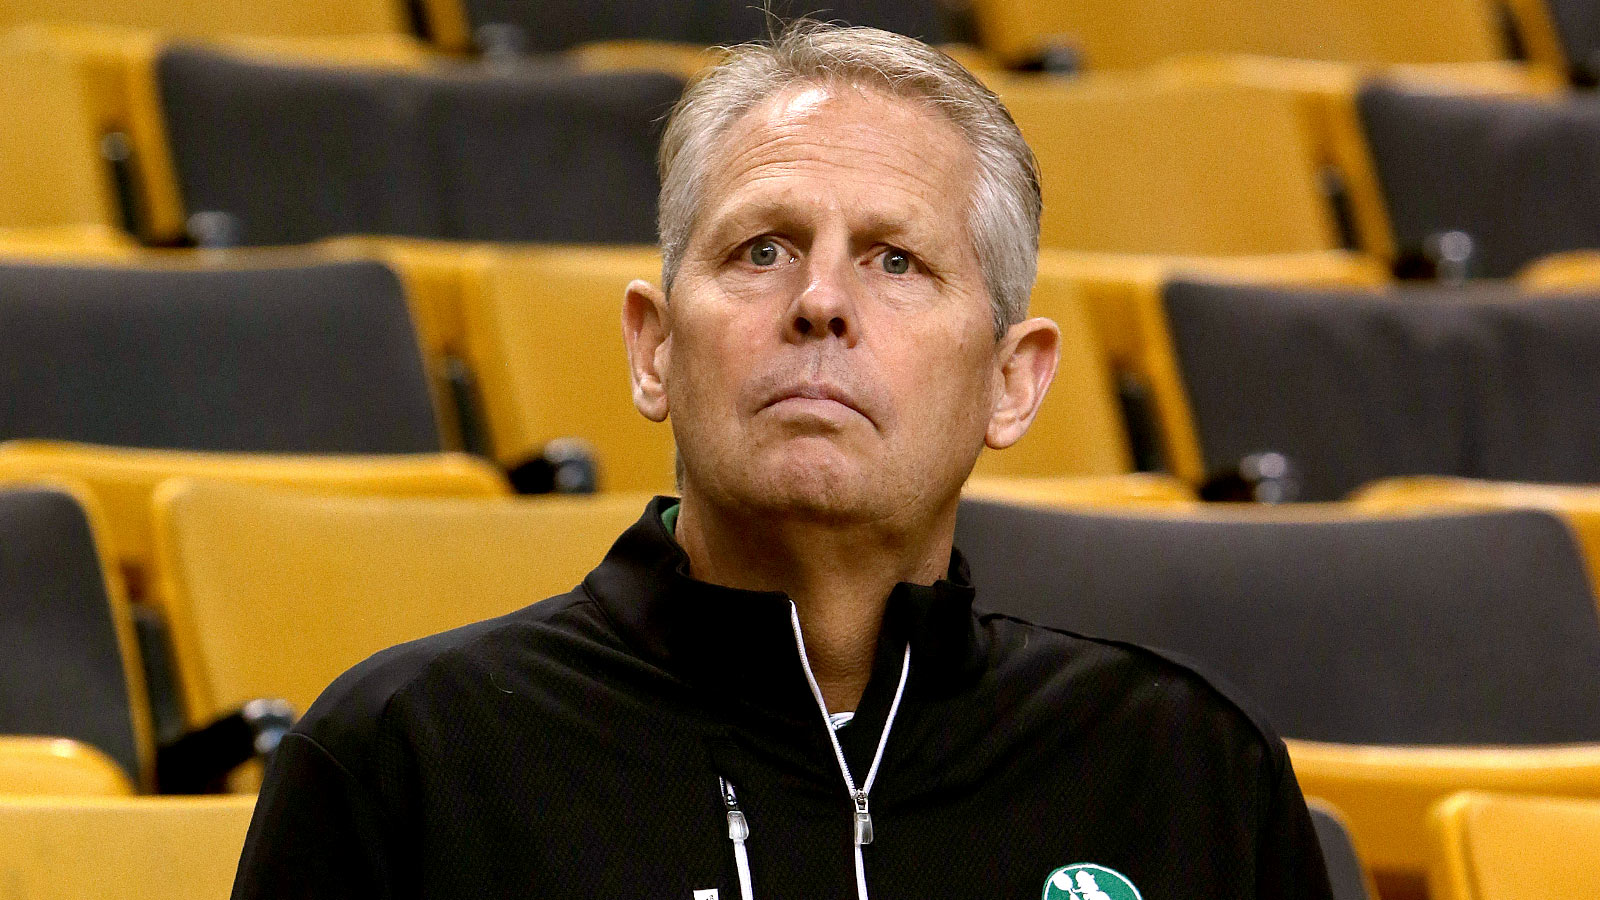 071015-NBA-Boston-Celtics-president-of-basketball-operations-Danny-Ainge-MM-PI